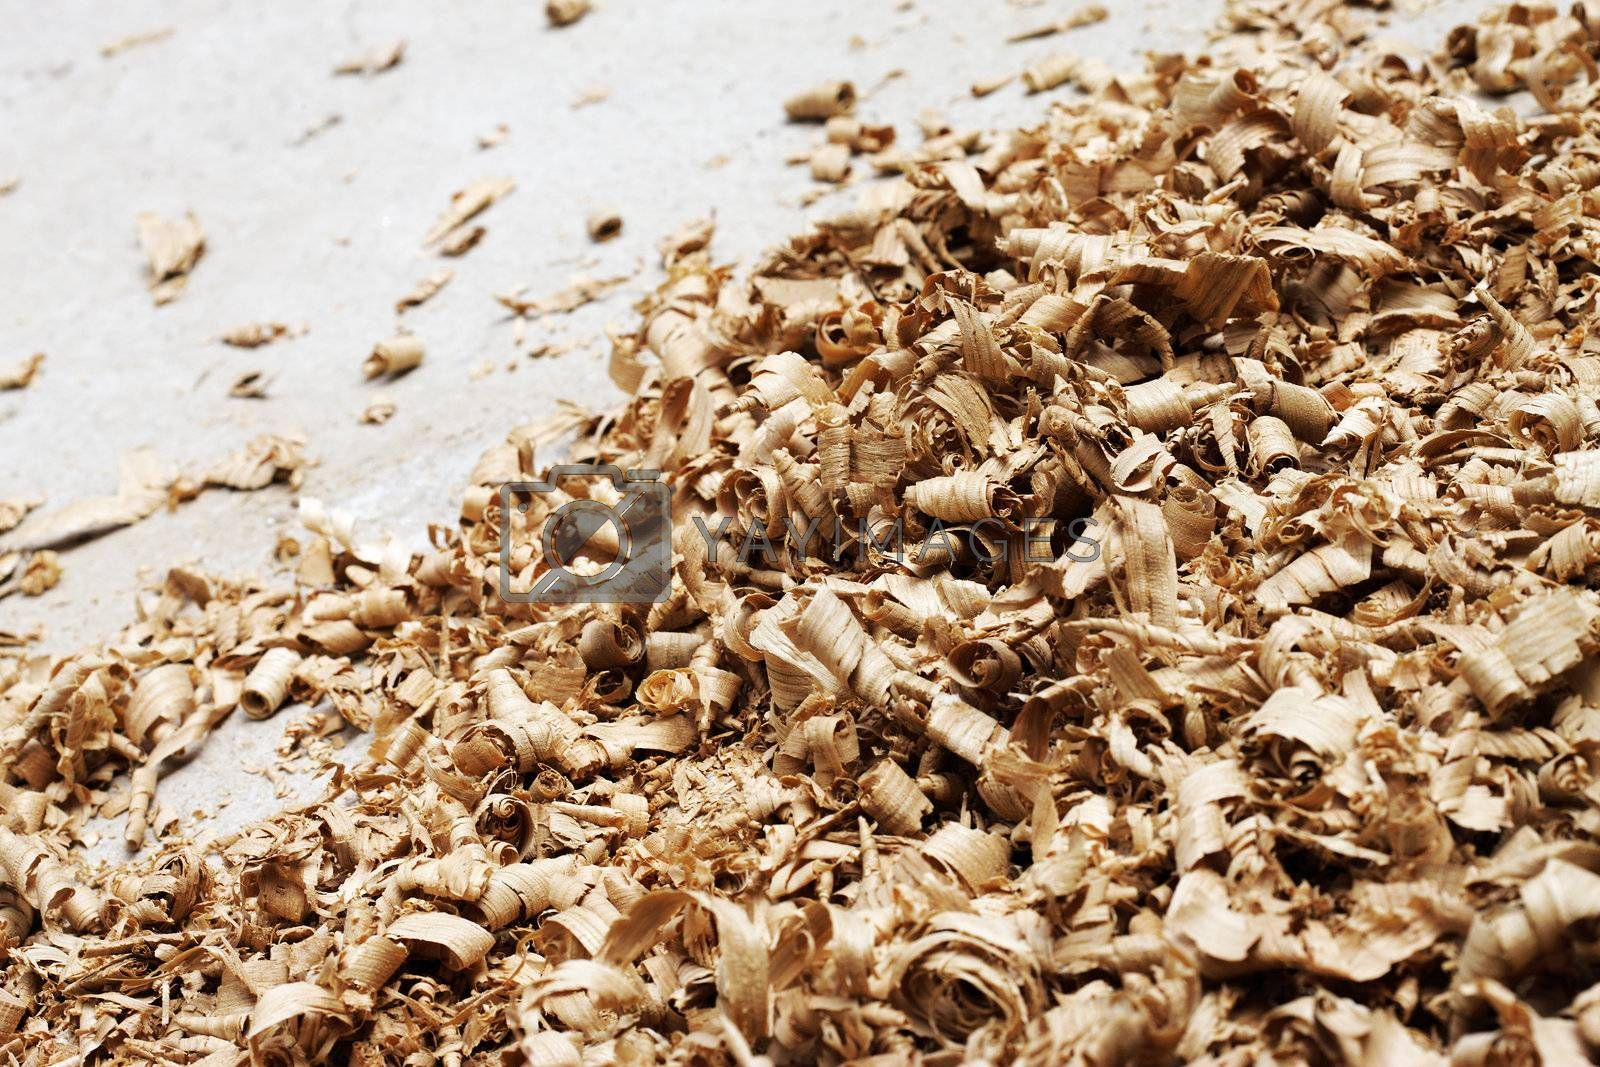 close up of a wood shavings